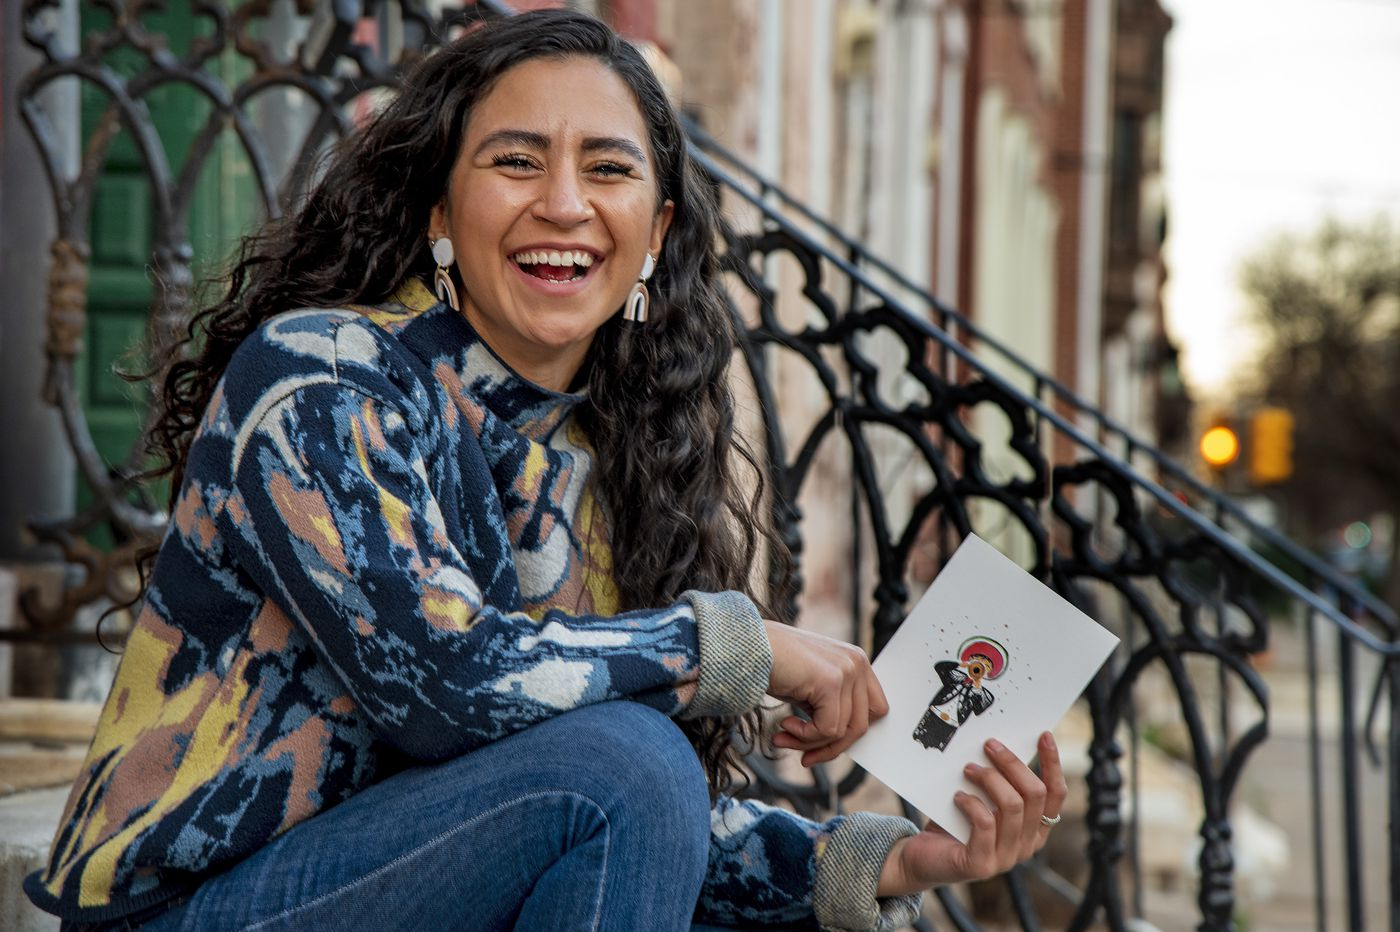 Inspired by her Mexican heritage, this entrepreneur has a greeting card start-up hoping to give back to Philly